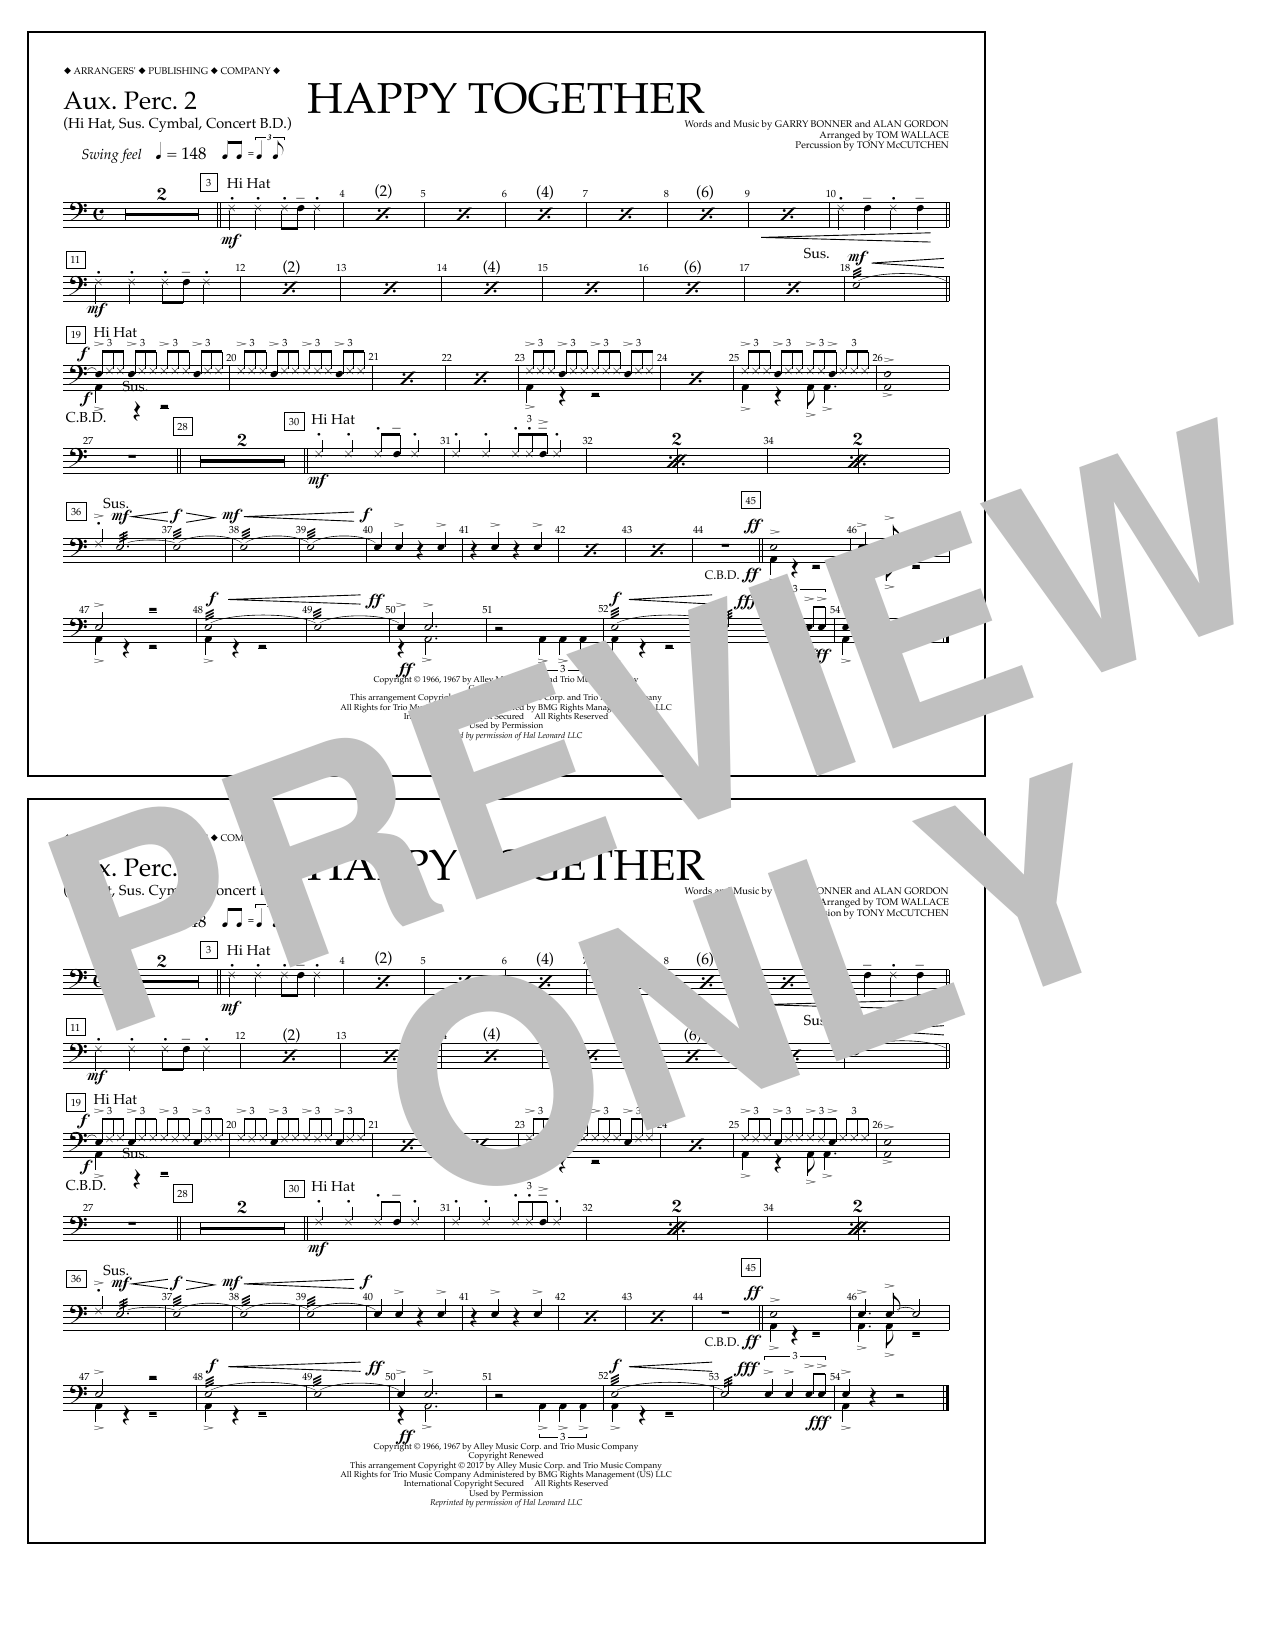 Happy Together - Aux. Perc. 2 Sheet Music